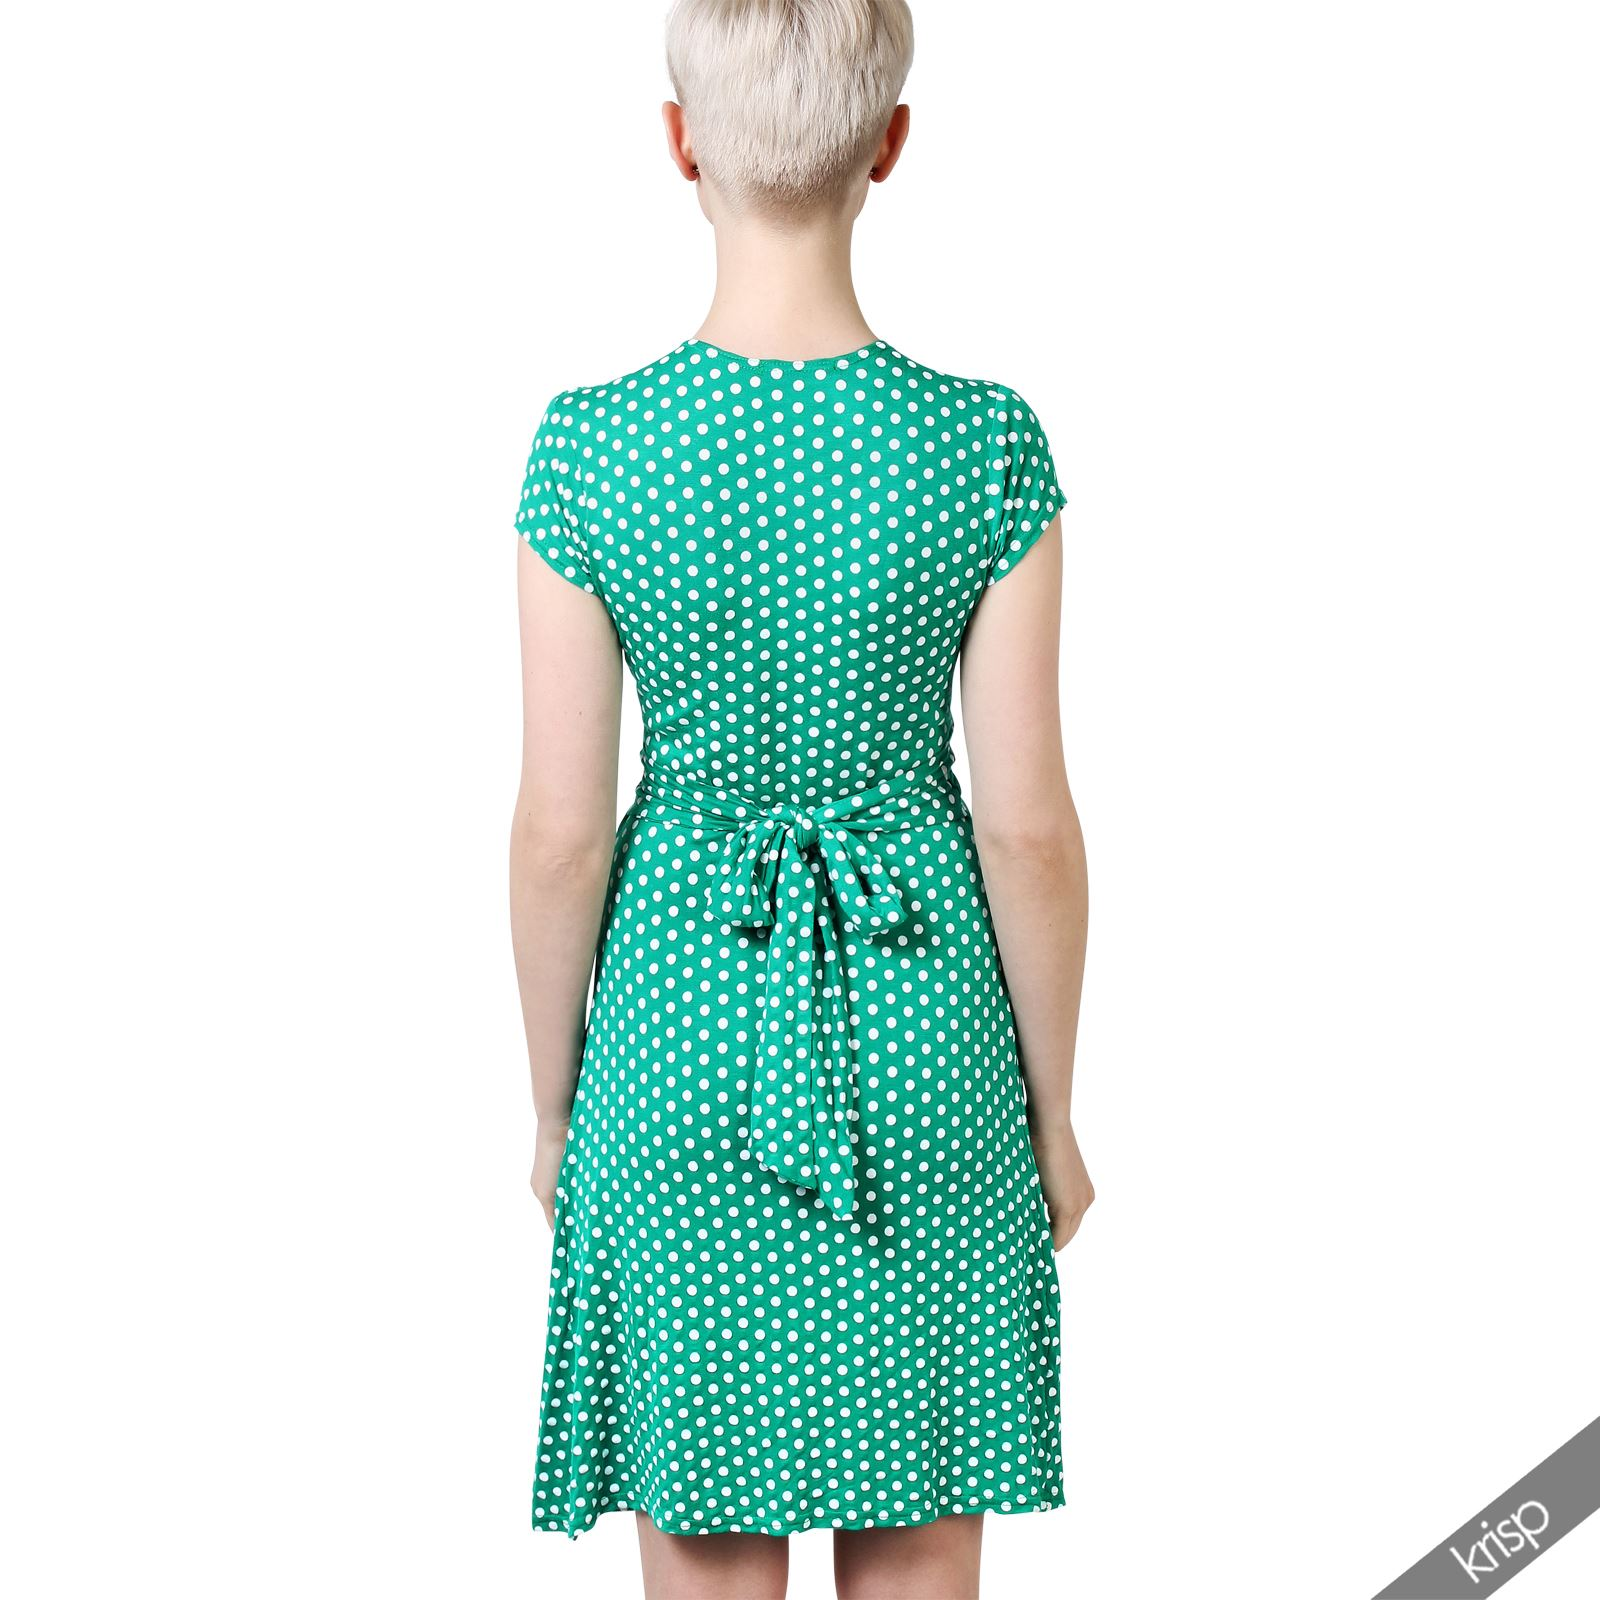 Womens-Polka-Dot-Dress-Pleated-Skirt-Wrap-Front-Mini-V-Neck-Top-Swing thumbnail 13